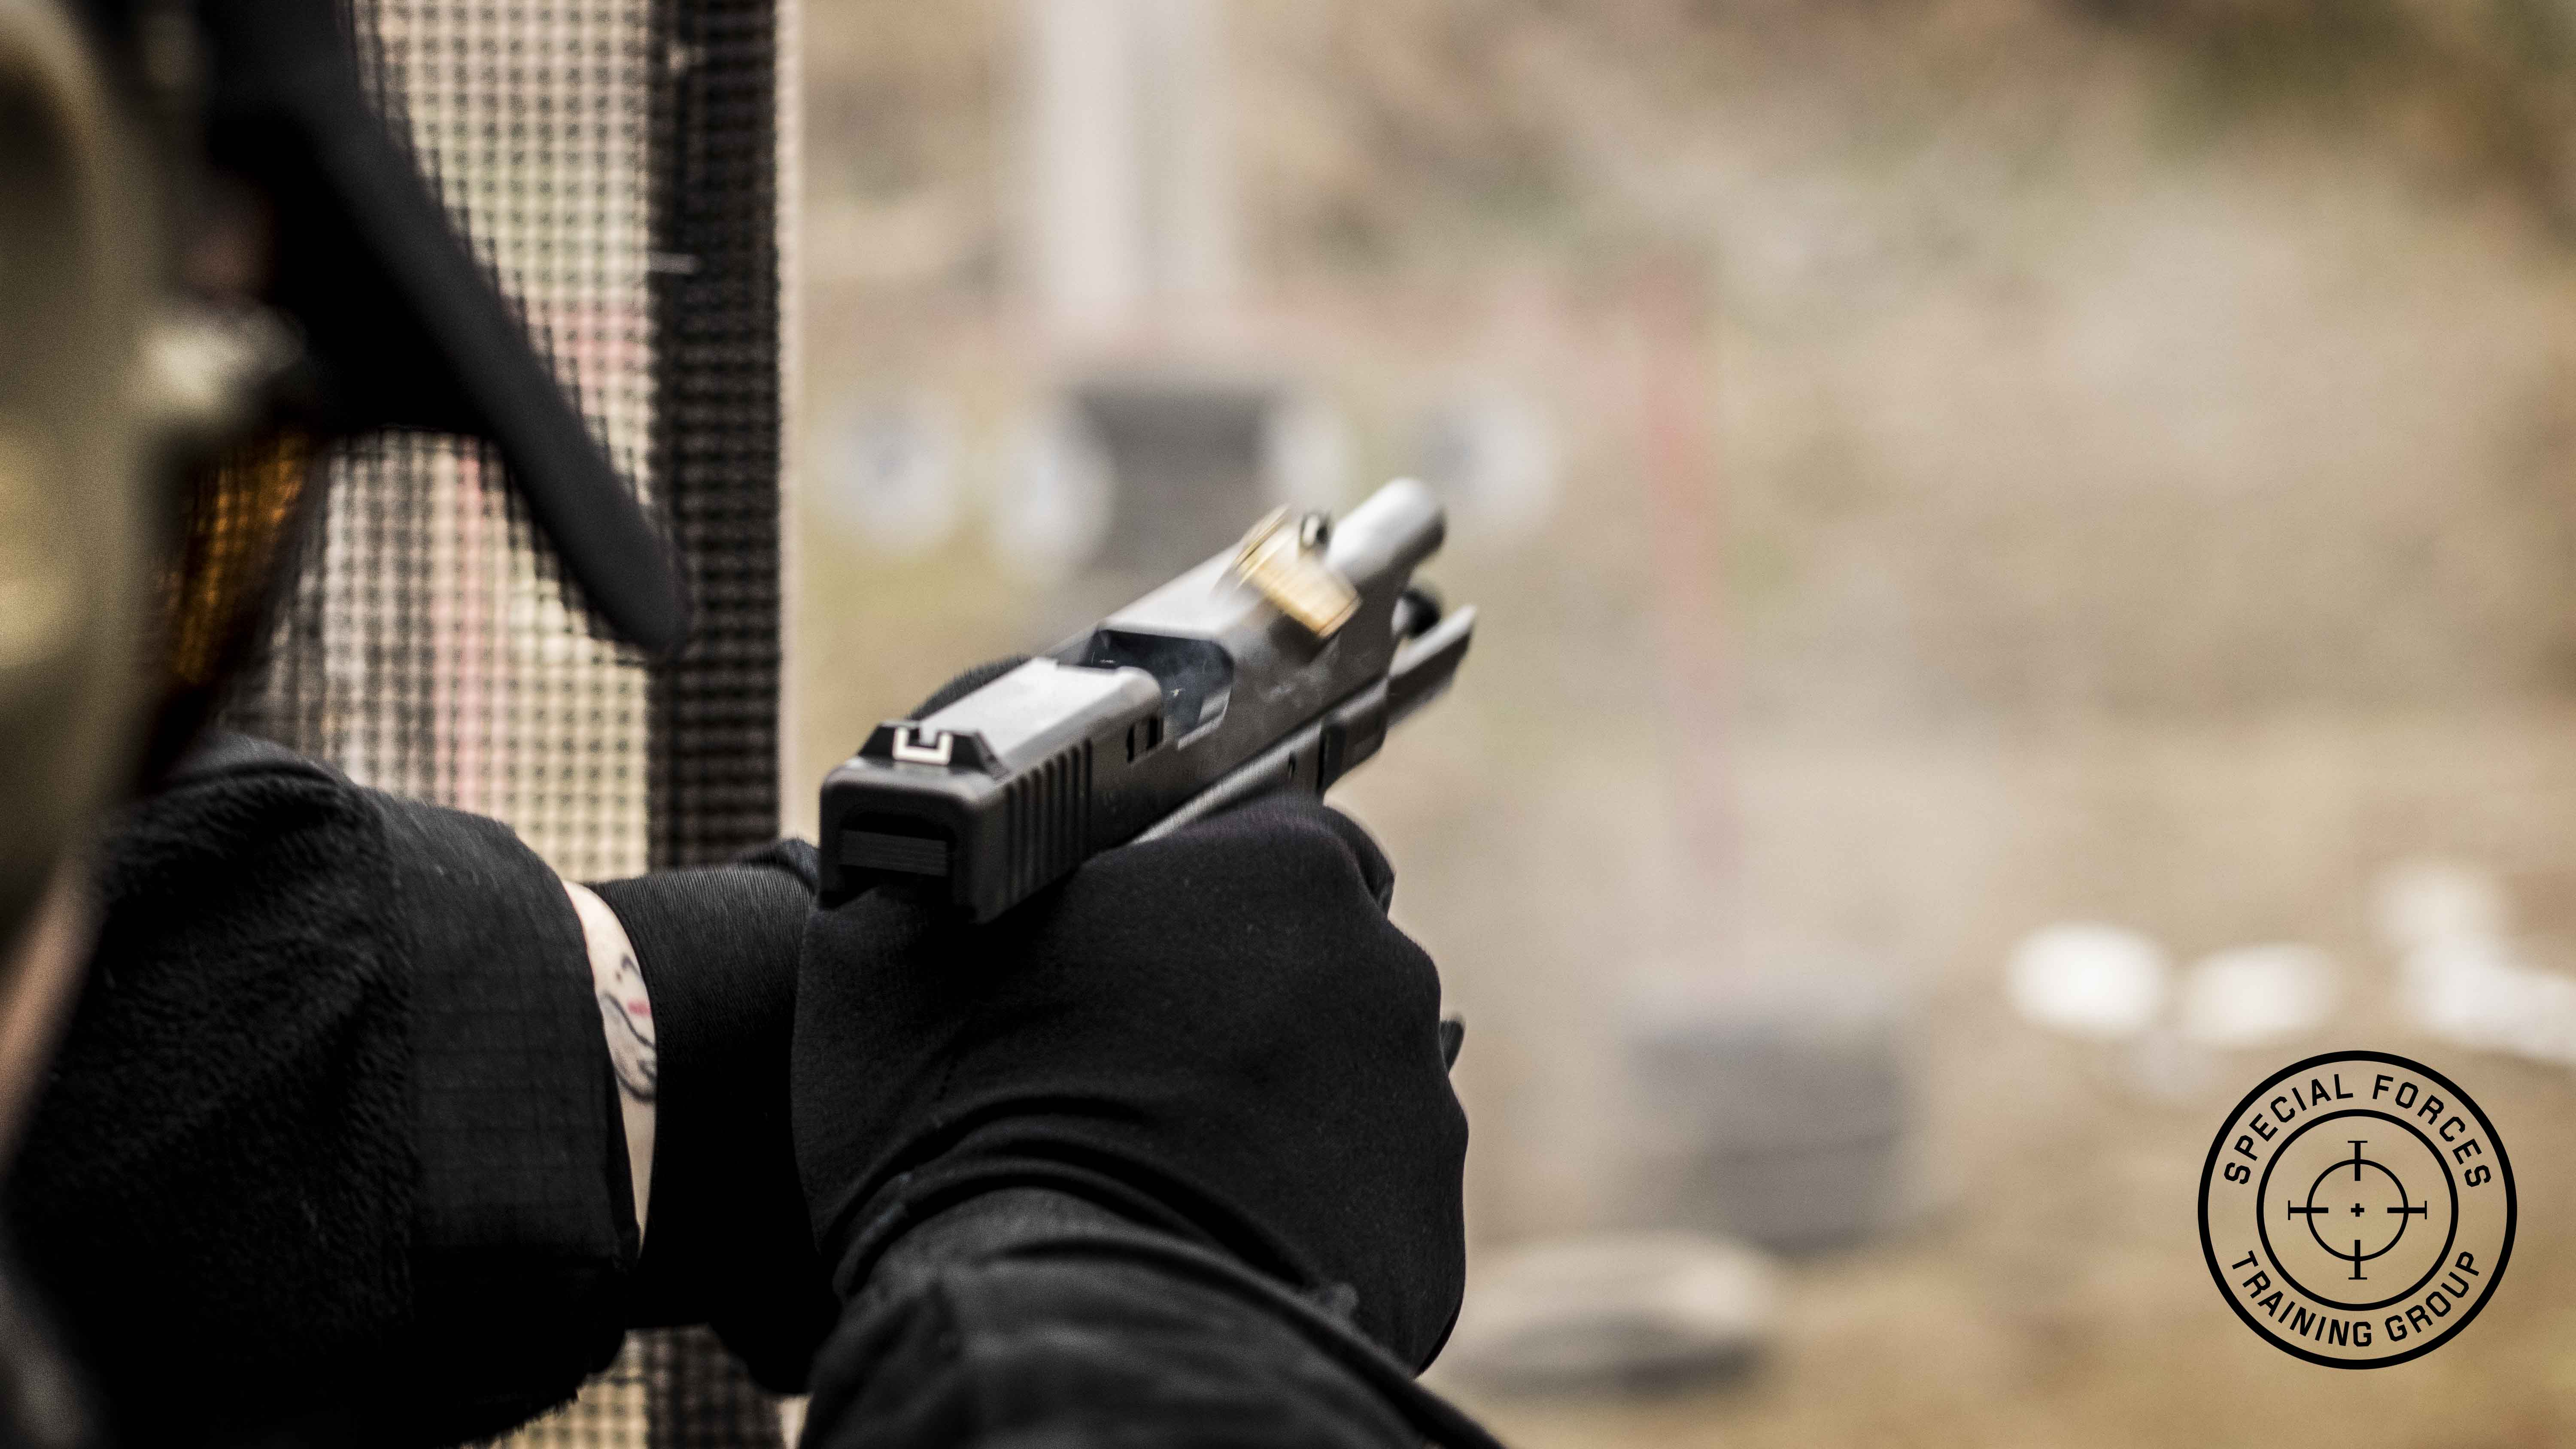 Special Forces Training Group | Tactical Pistol Courses